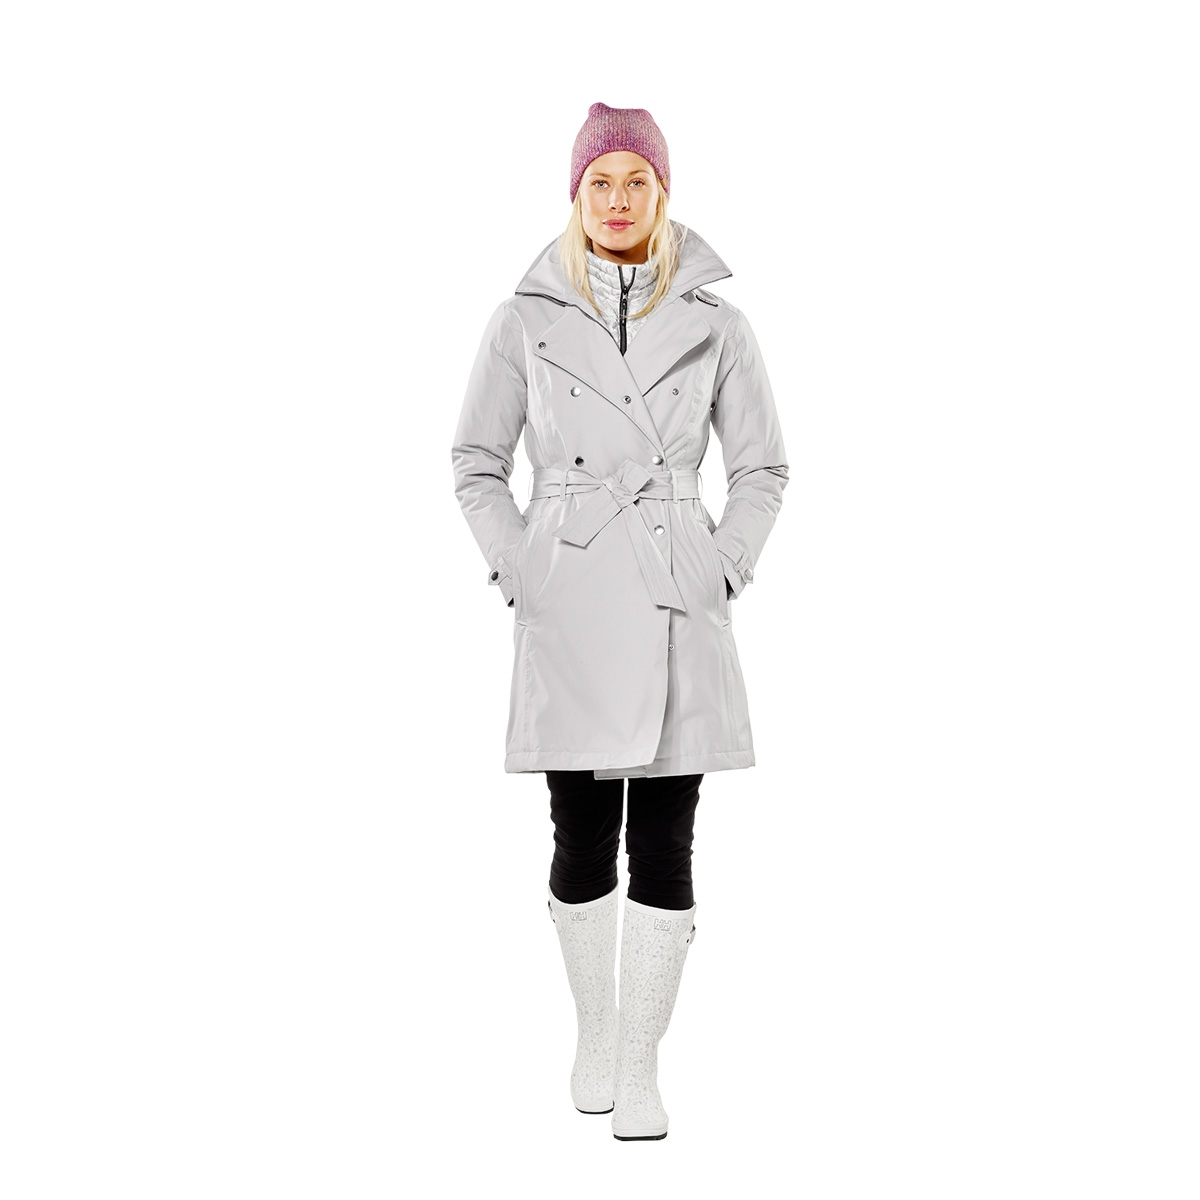 pretty cheap outlet popular brand Helly Hansen Welsey Insulated Trench Jacket (Women's) - Light Grey